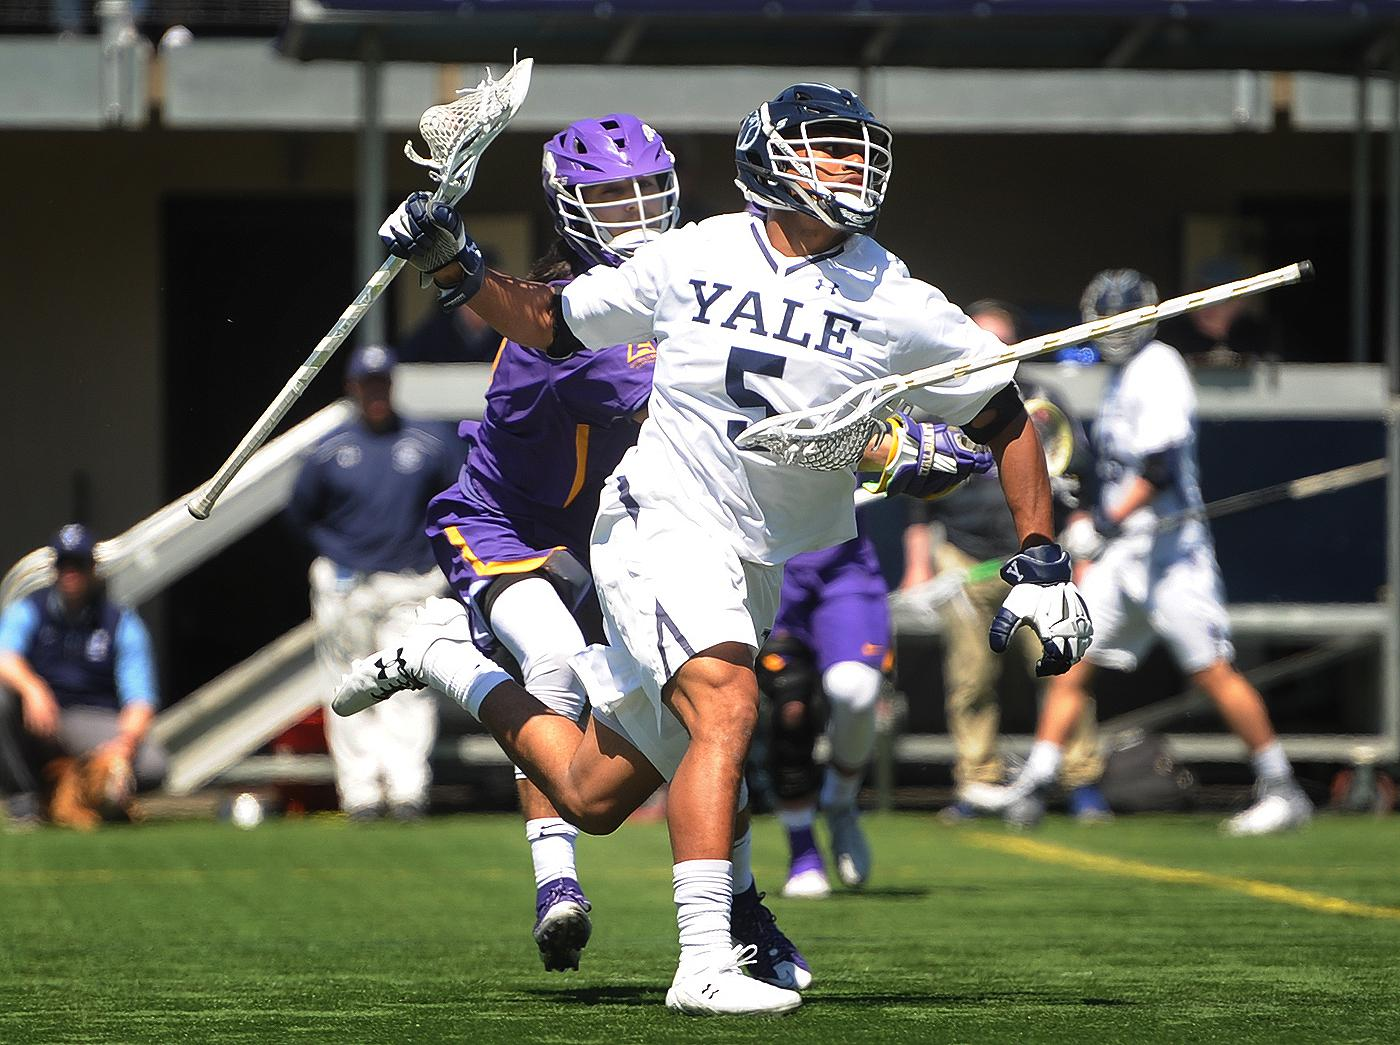 Three former Yale stars set to play in Premier Lacrosse League championship game